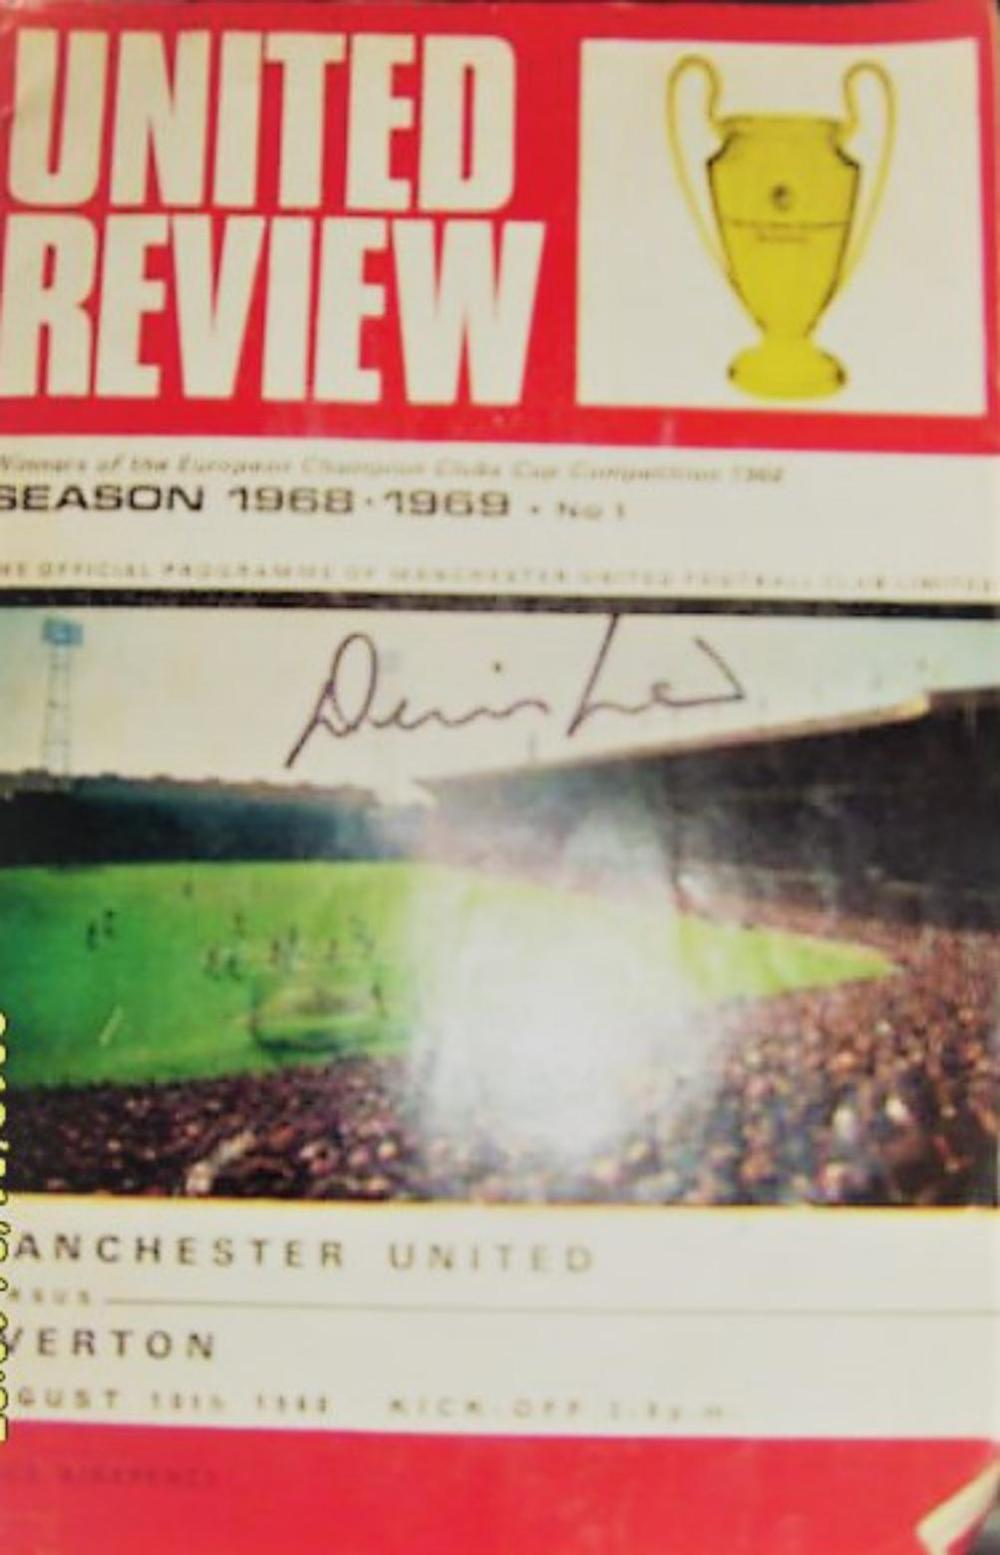 Lot 176: Football Programme Signed by LEGEND Denis Law